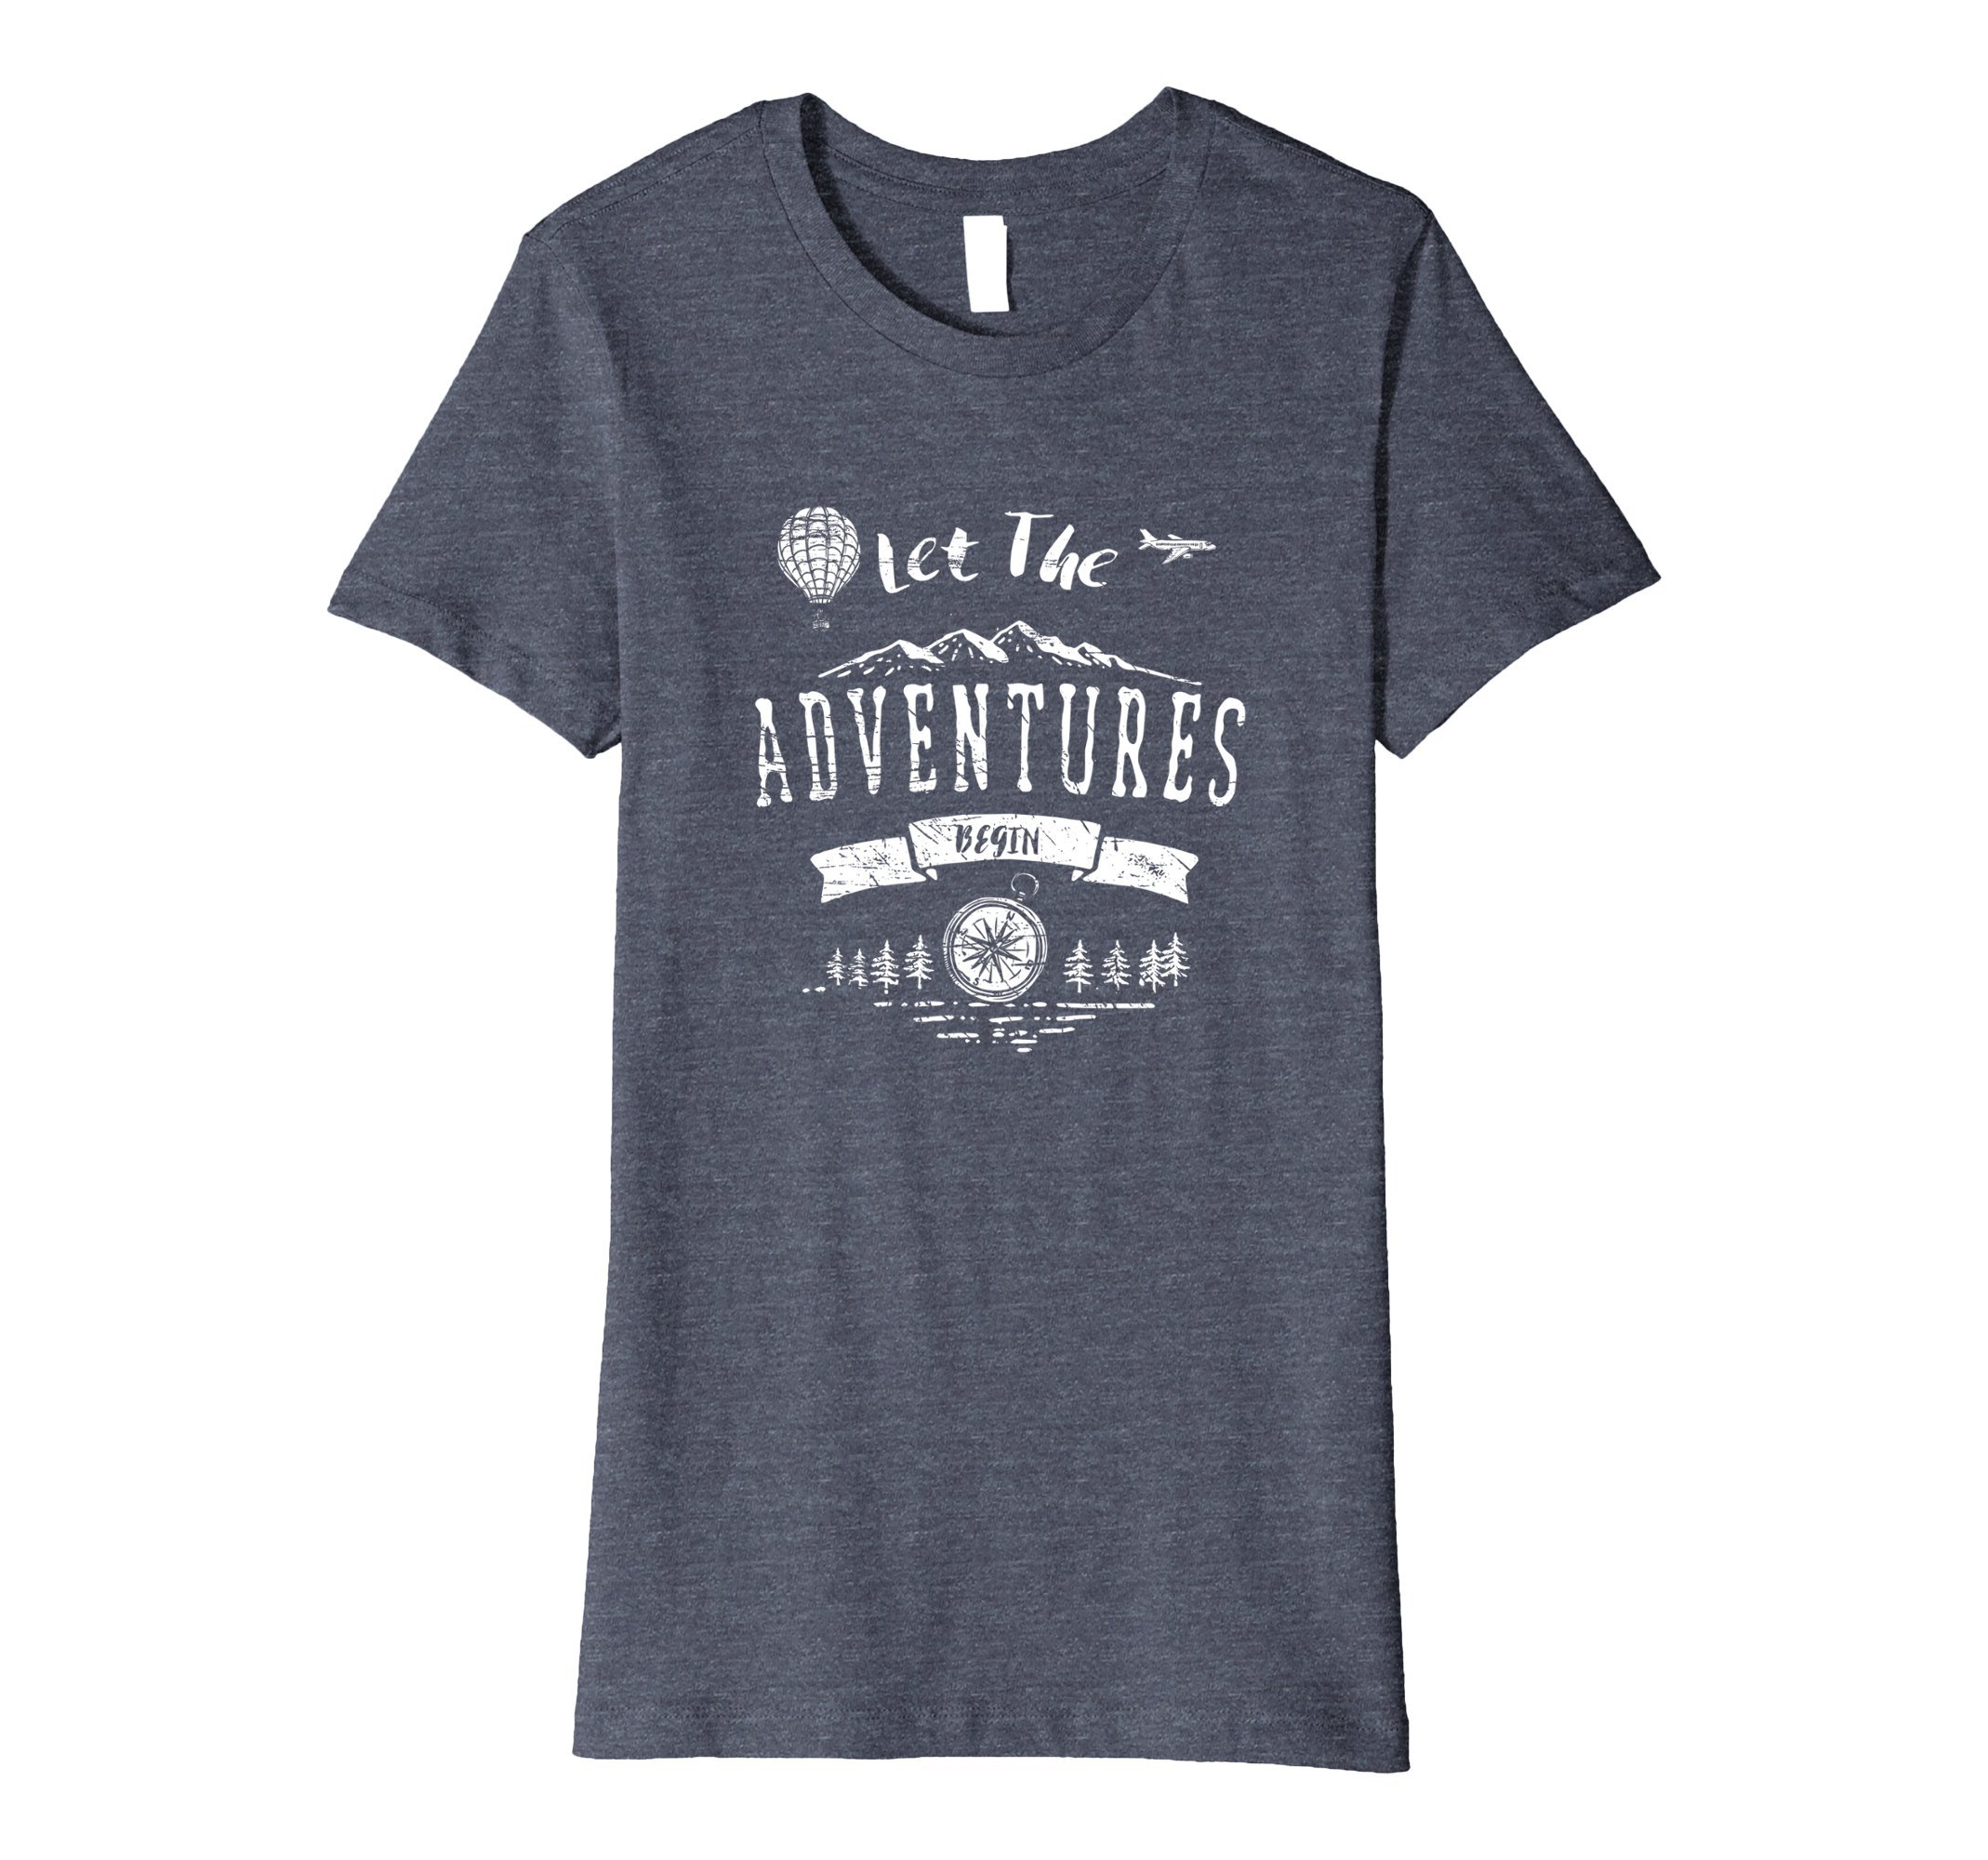 Womens Let The Adventures Begin T-Shirt Travel Explore Apparel Large Heather Blue